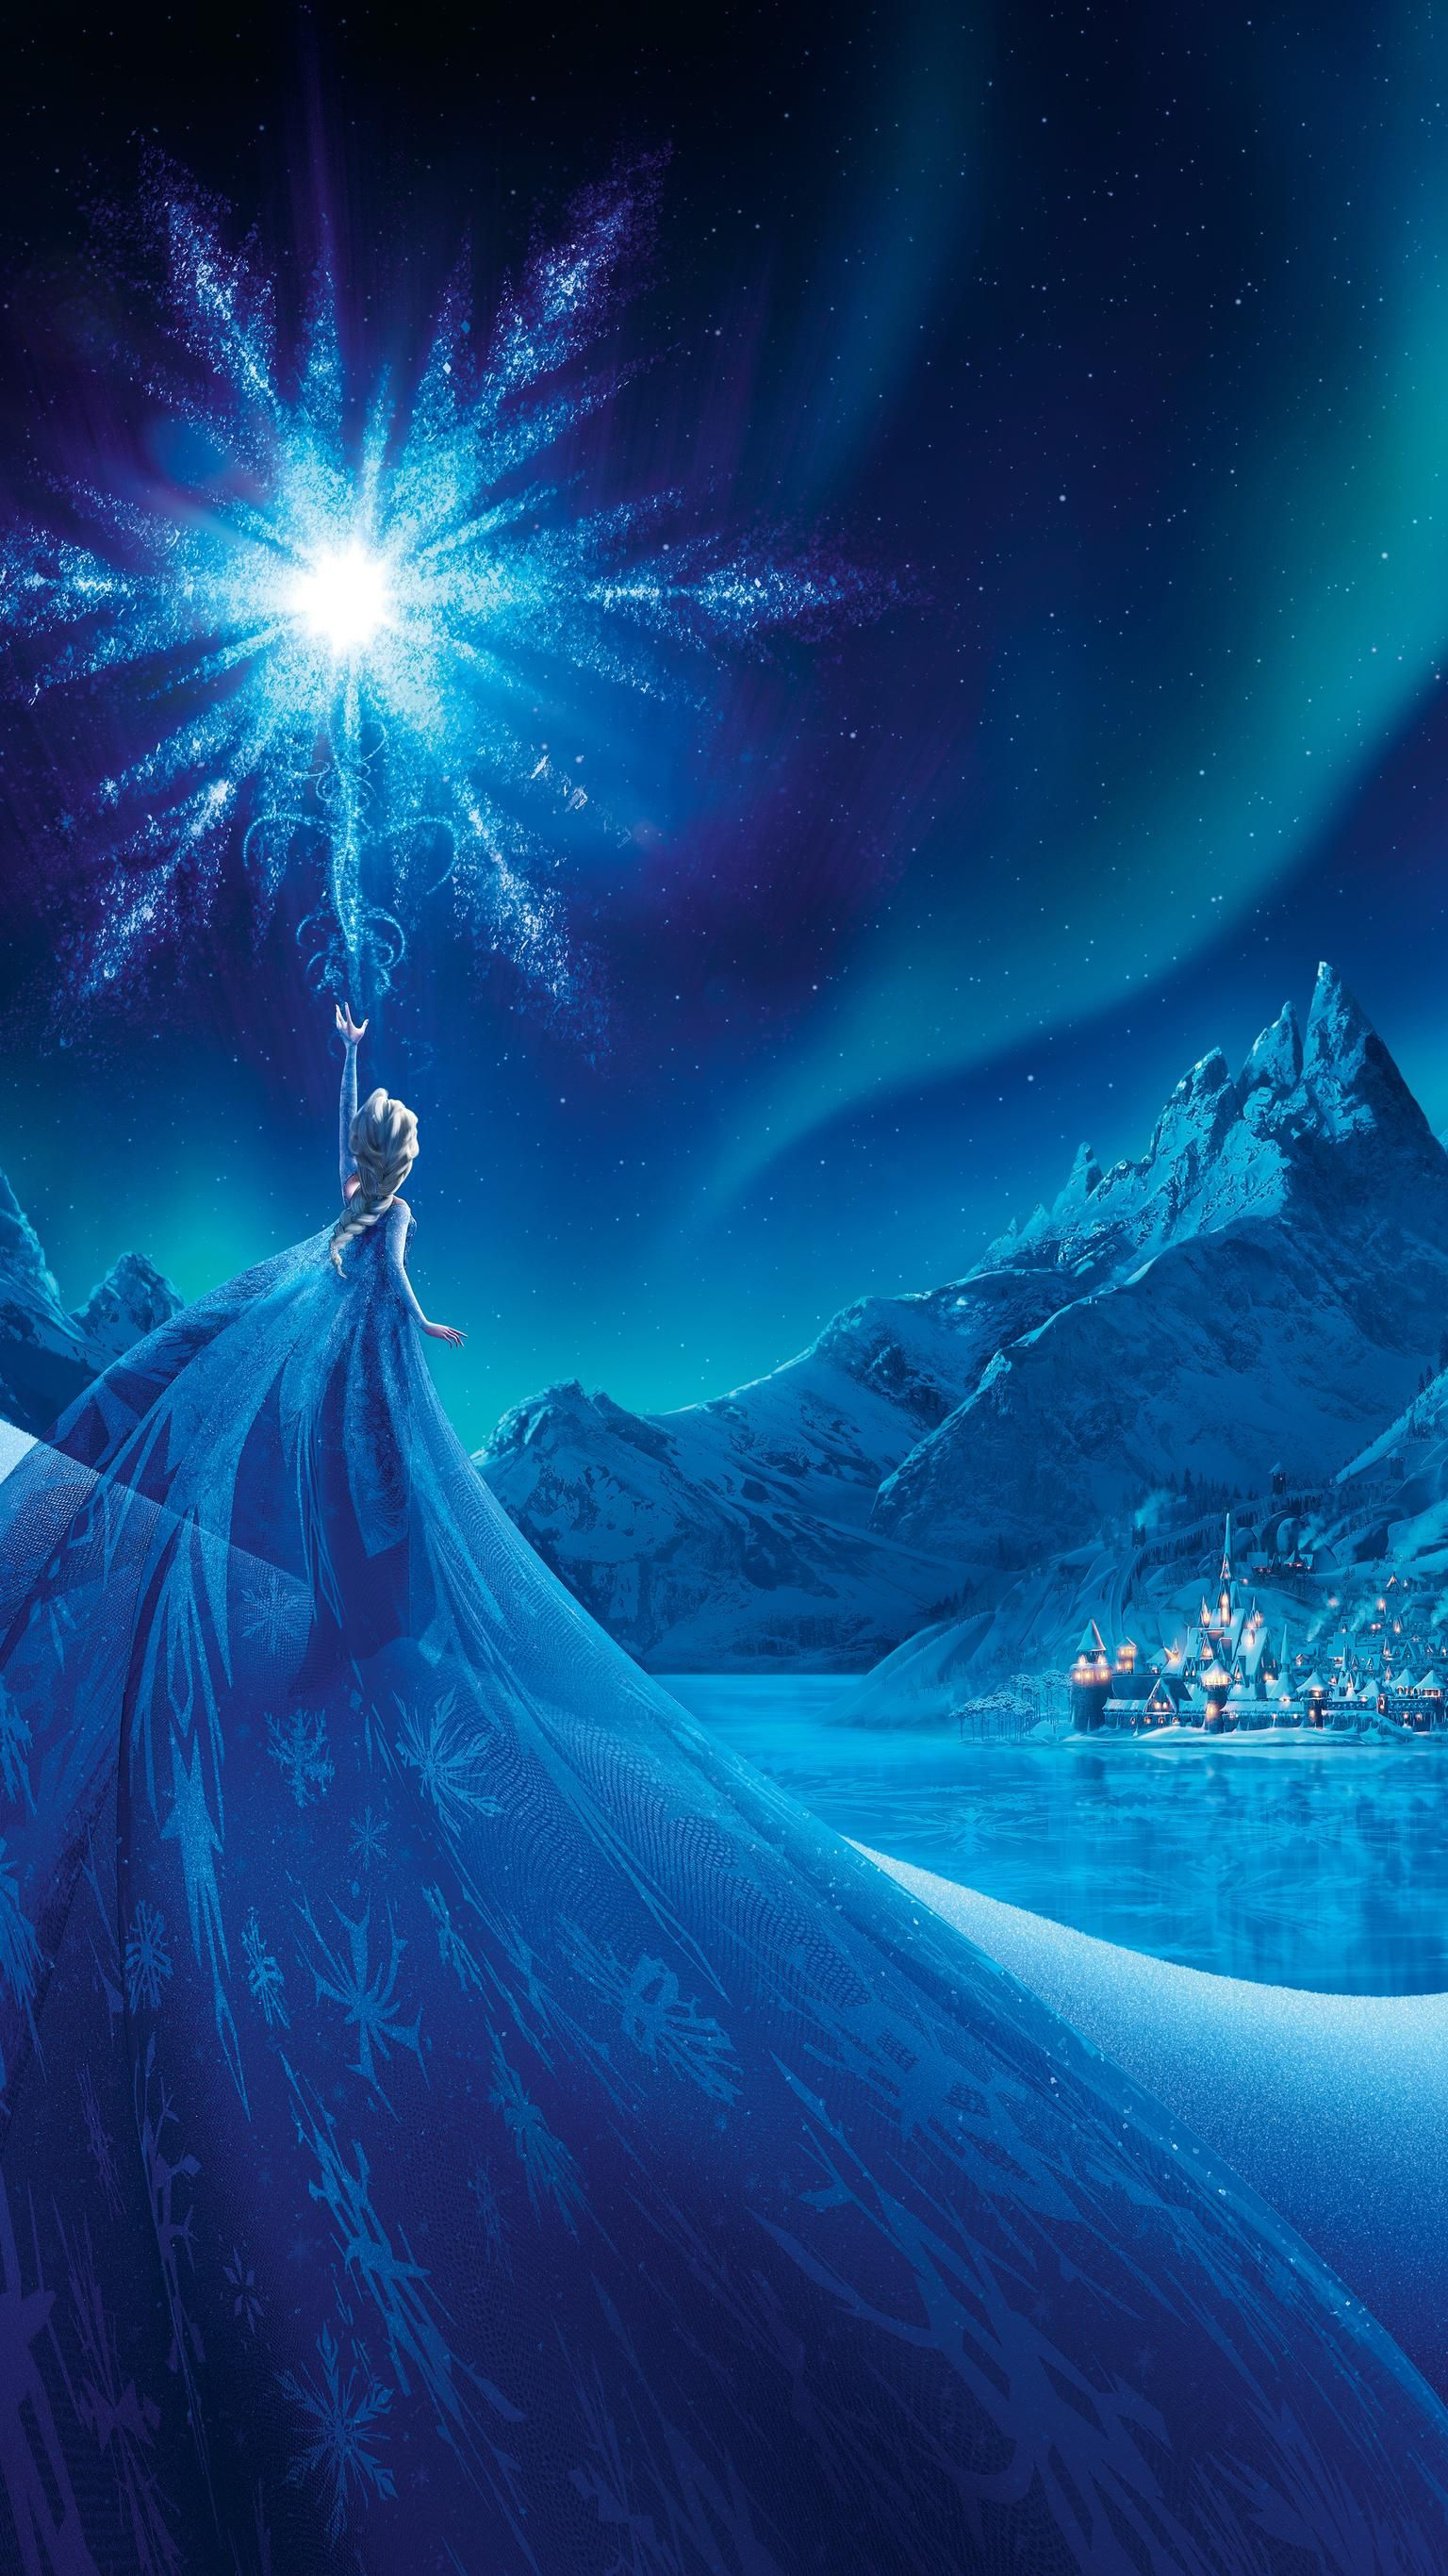 Frozen (2013) Phone Wallpaper #disneyprincess